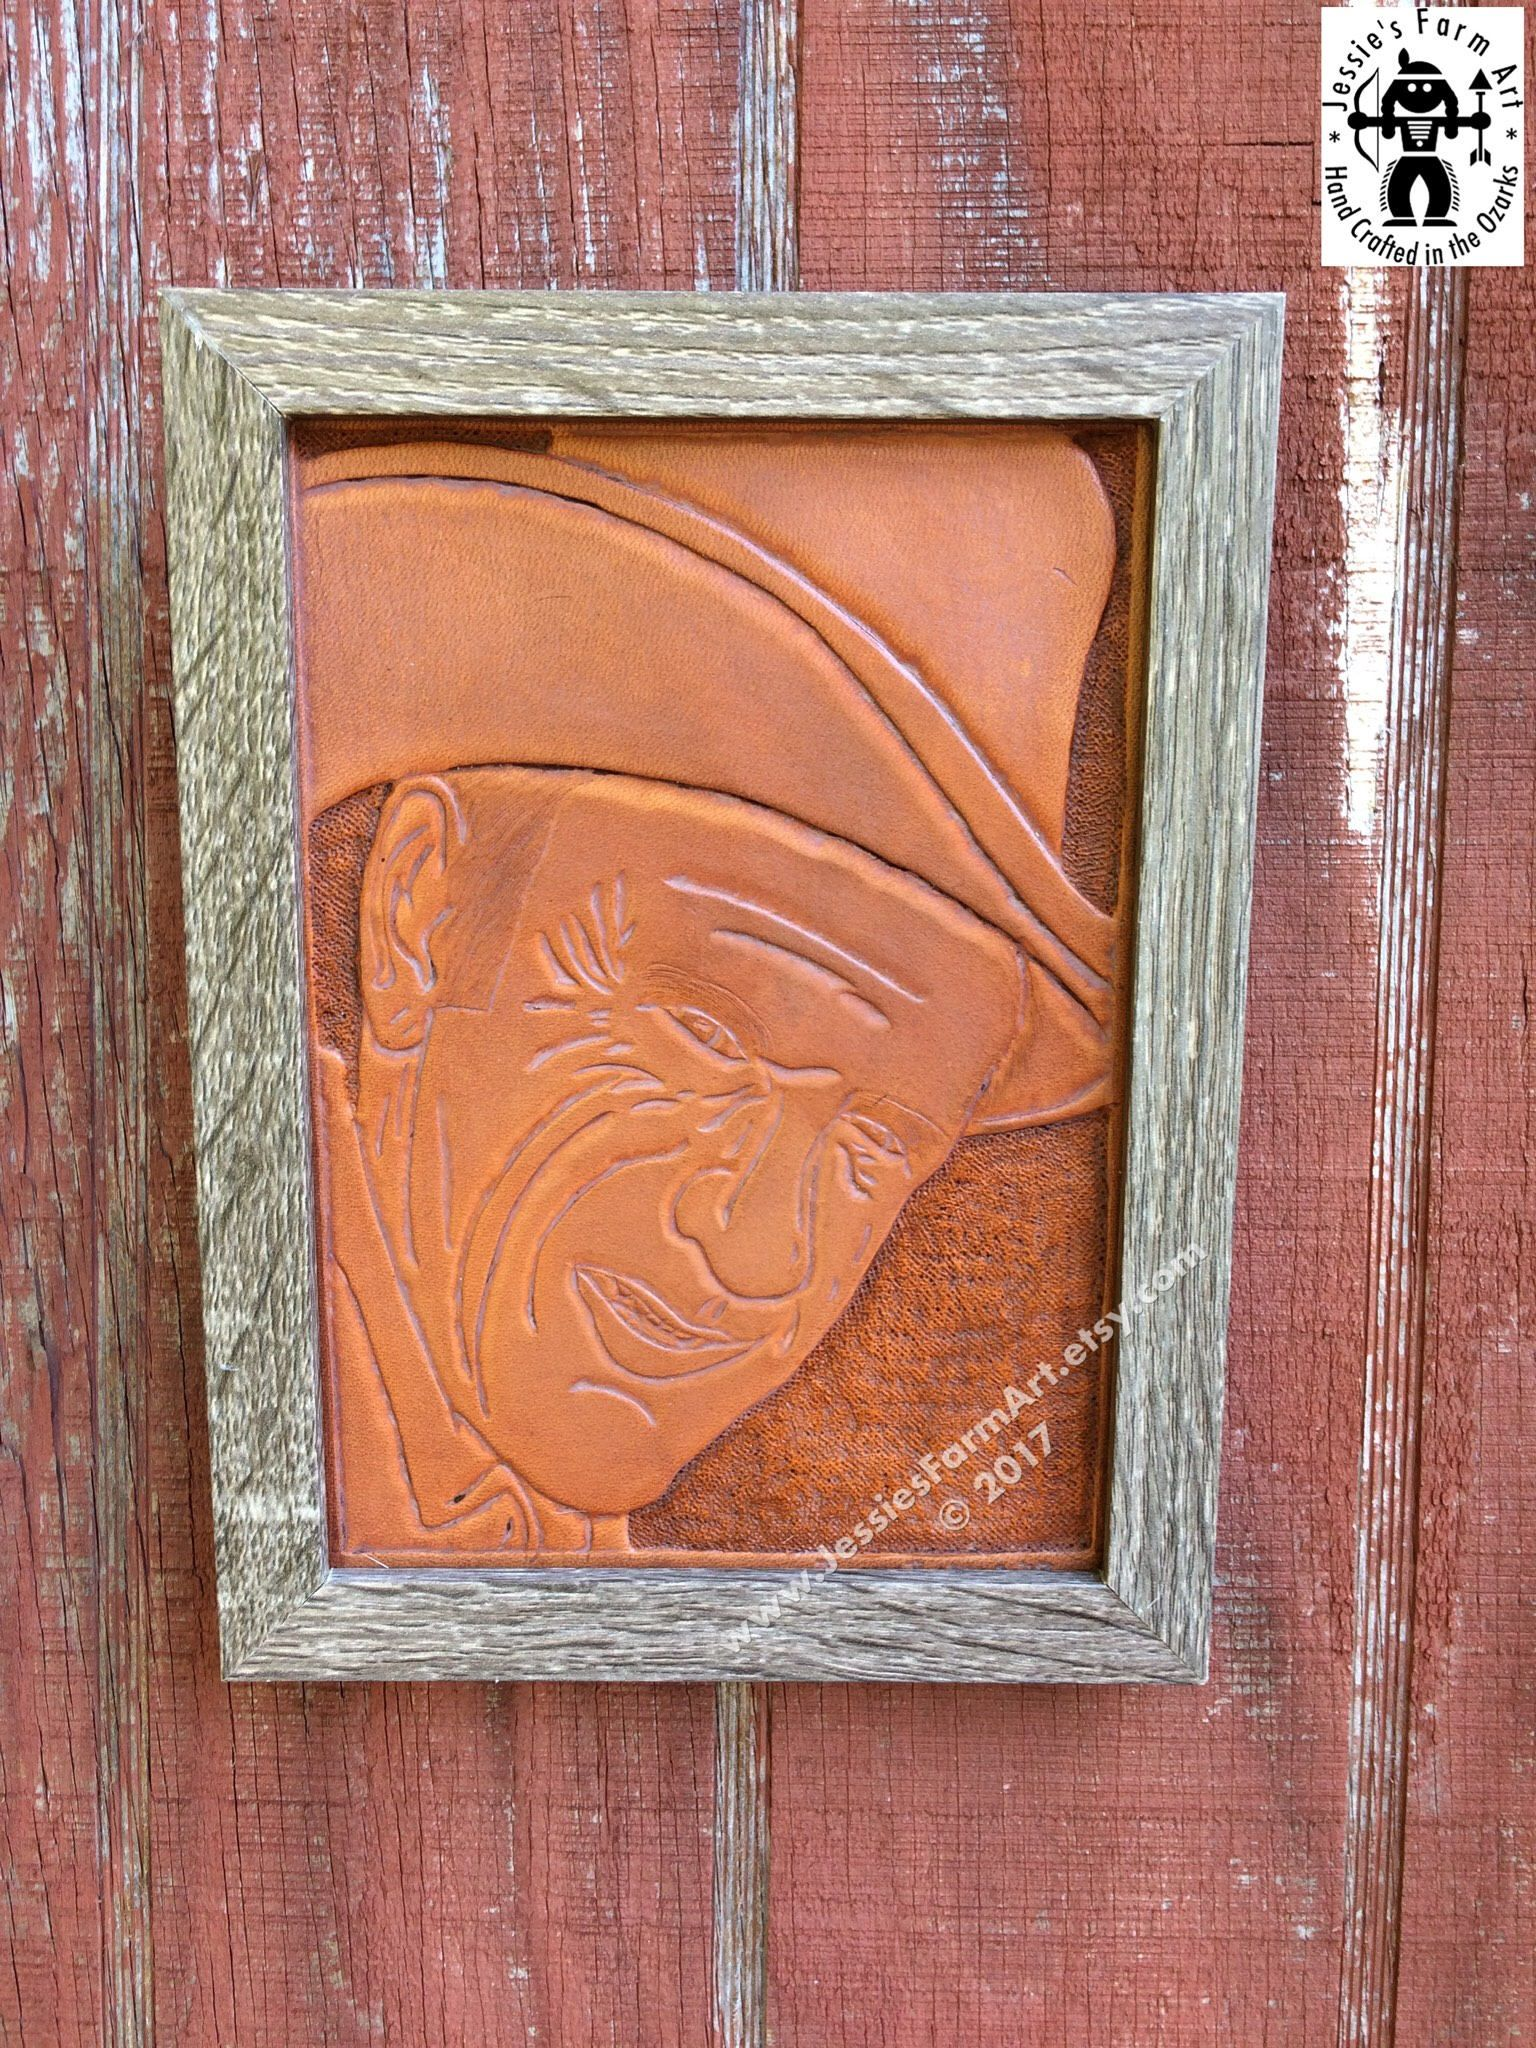 Hand Tooled Leather Wall Art Decor Marshal Matt Dillion Portrait